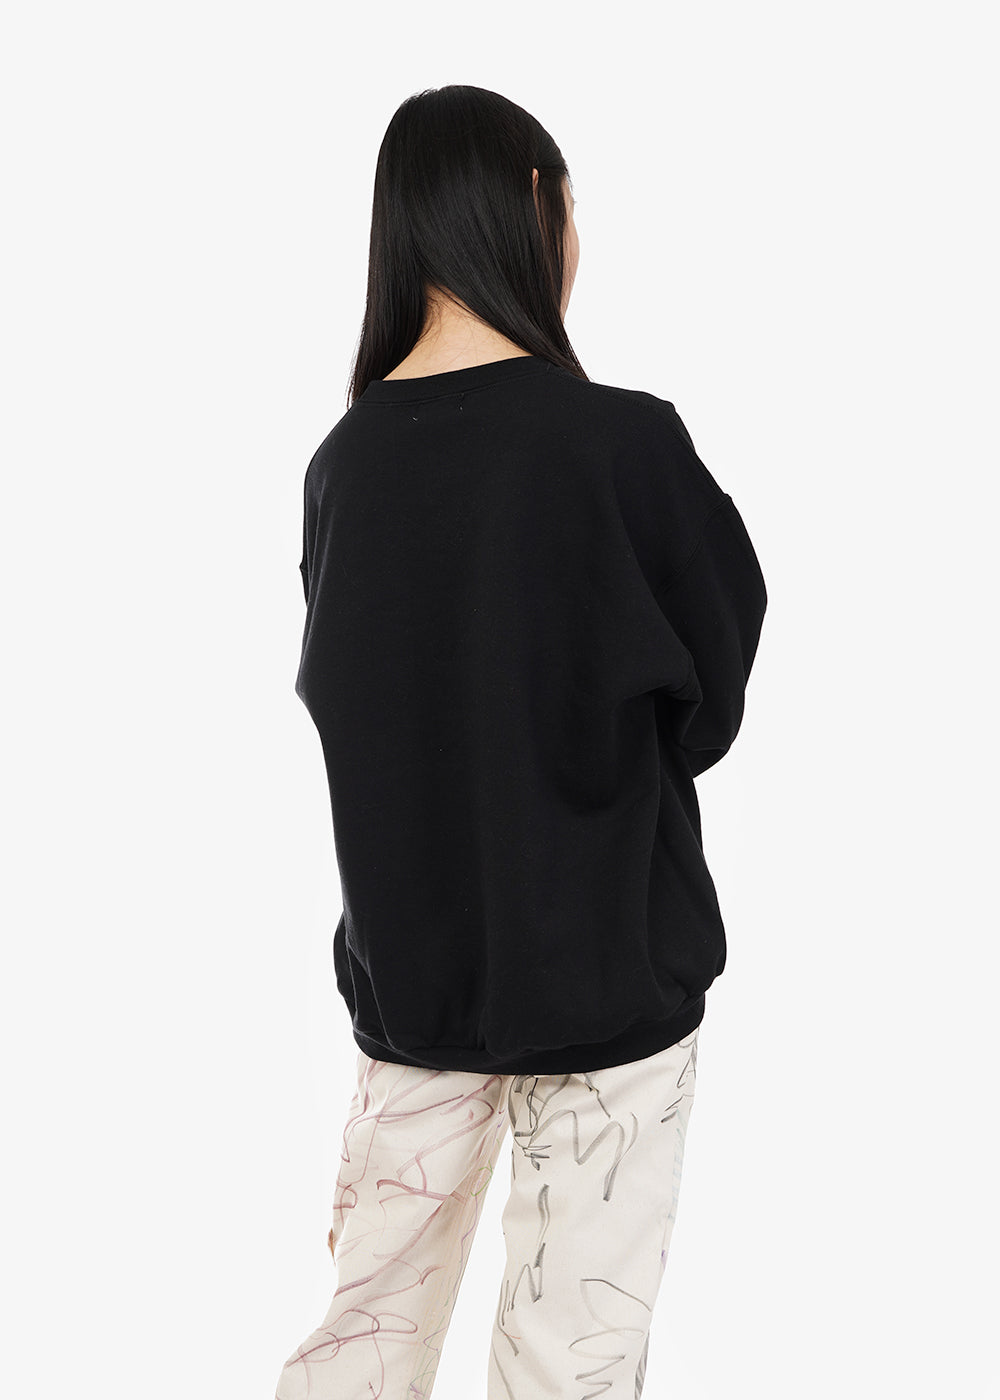 Collina Strada Vulnerability Round Hem Hoodie — Shop sustainable fashion and slow fashion at New Classics Studios